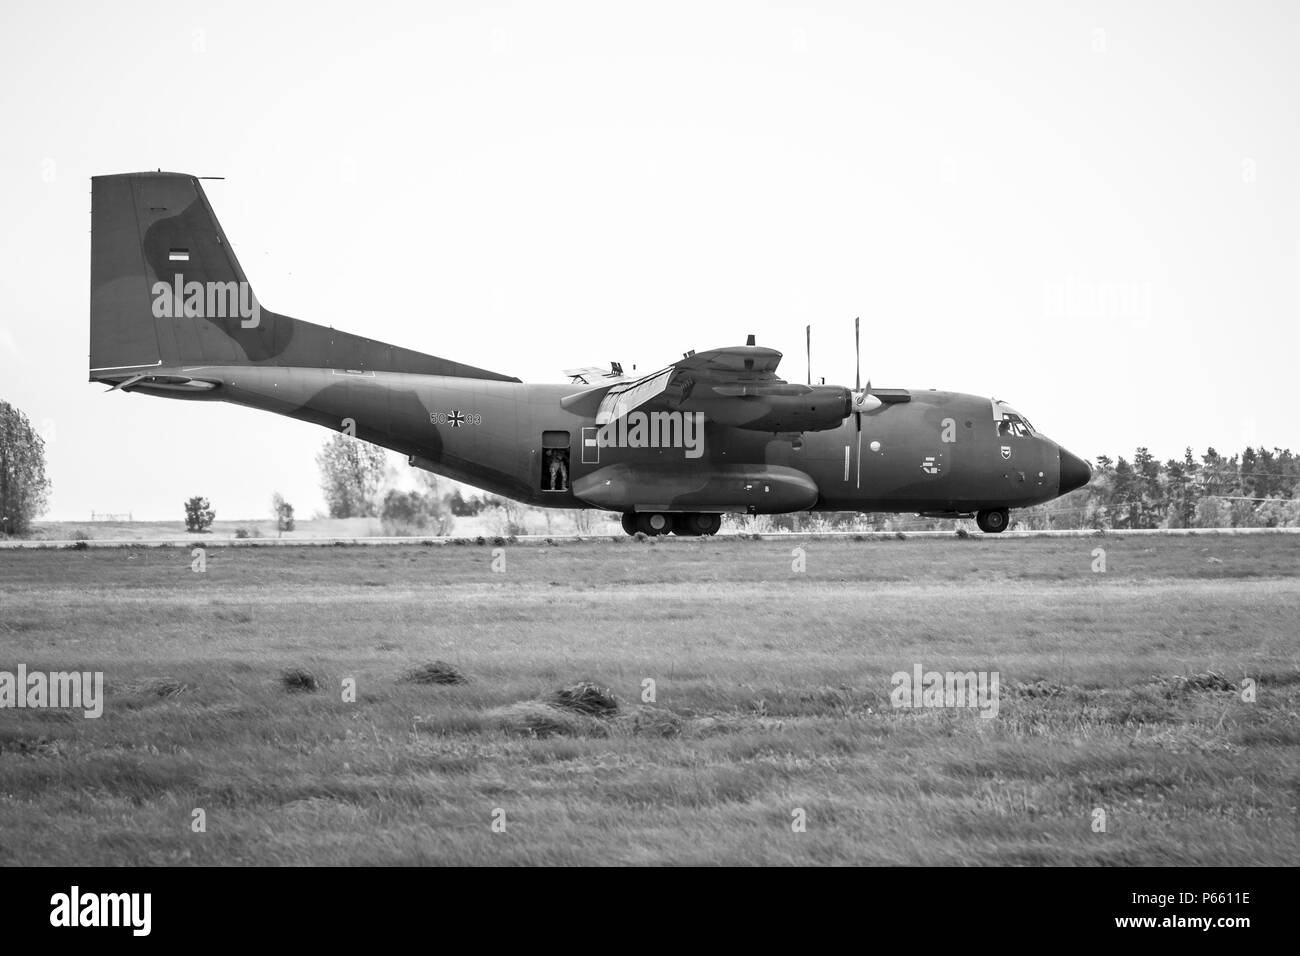 Landing of the military transport aircraft Transall C-160D. German Air Force. Black and white. Exhibition ILA Berlin Air Show 2018. Stock Photo